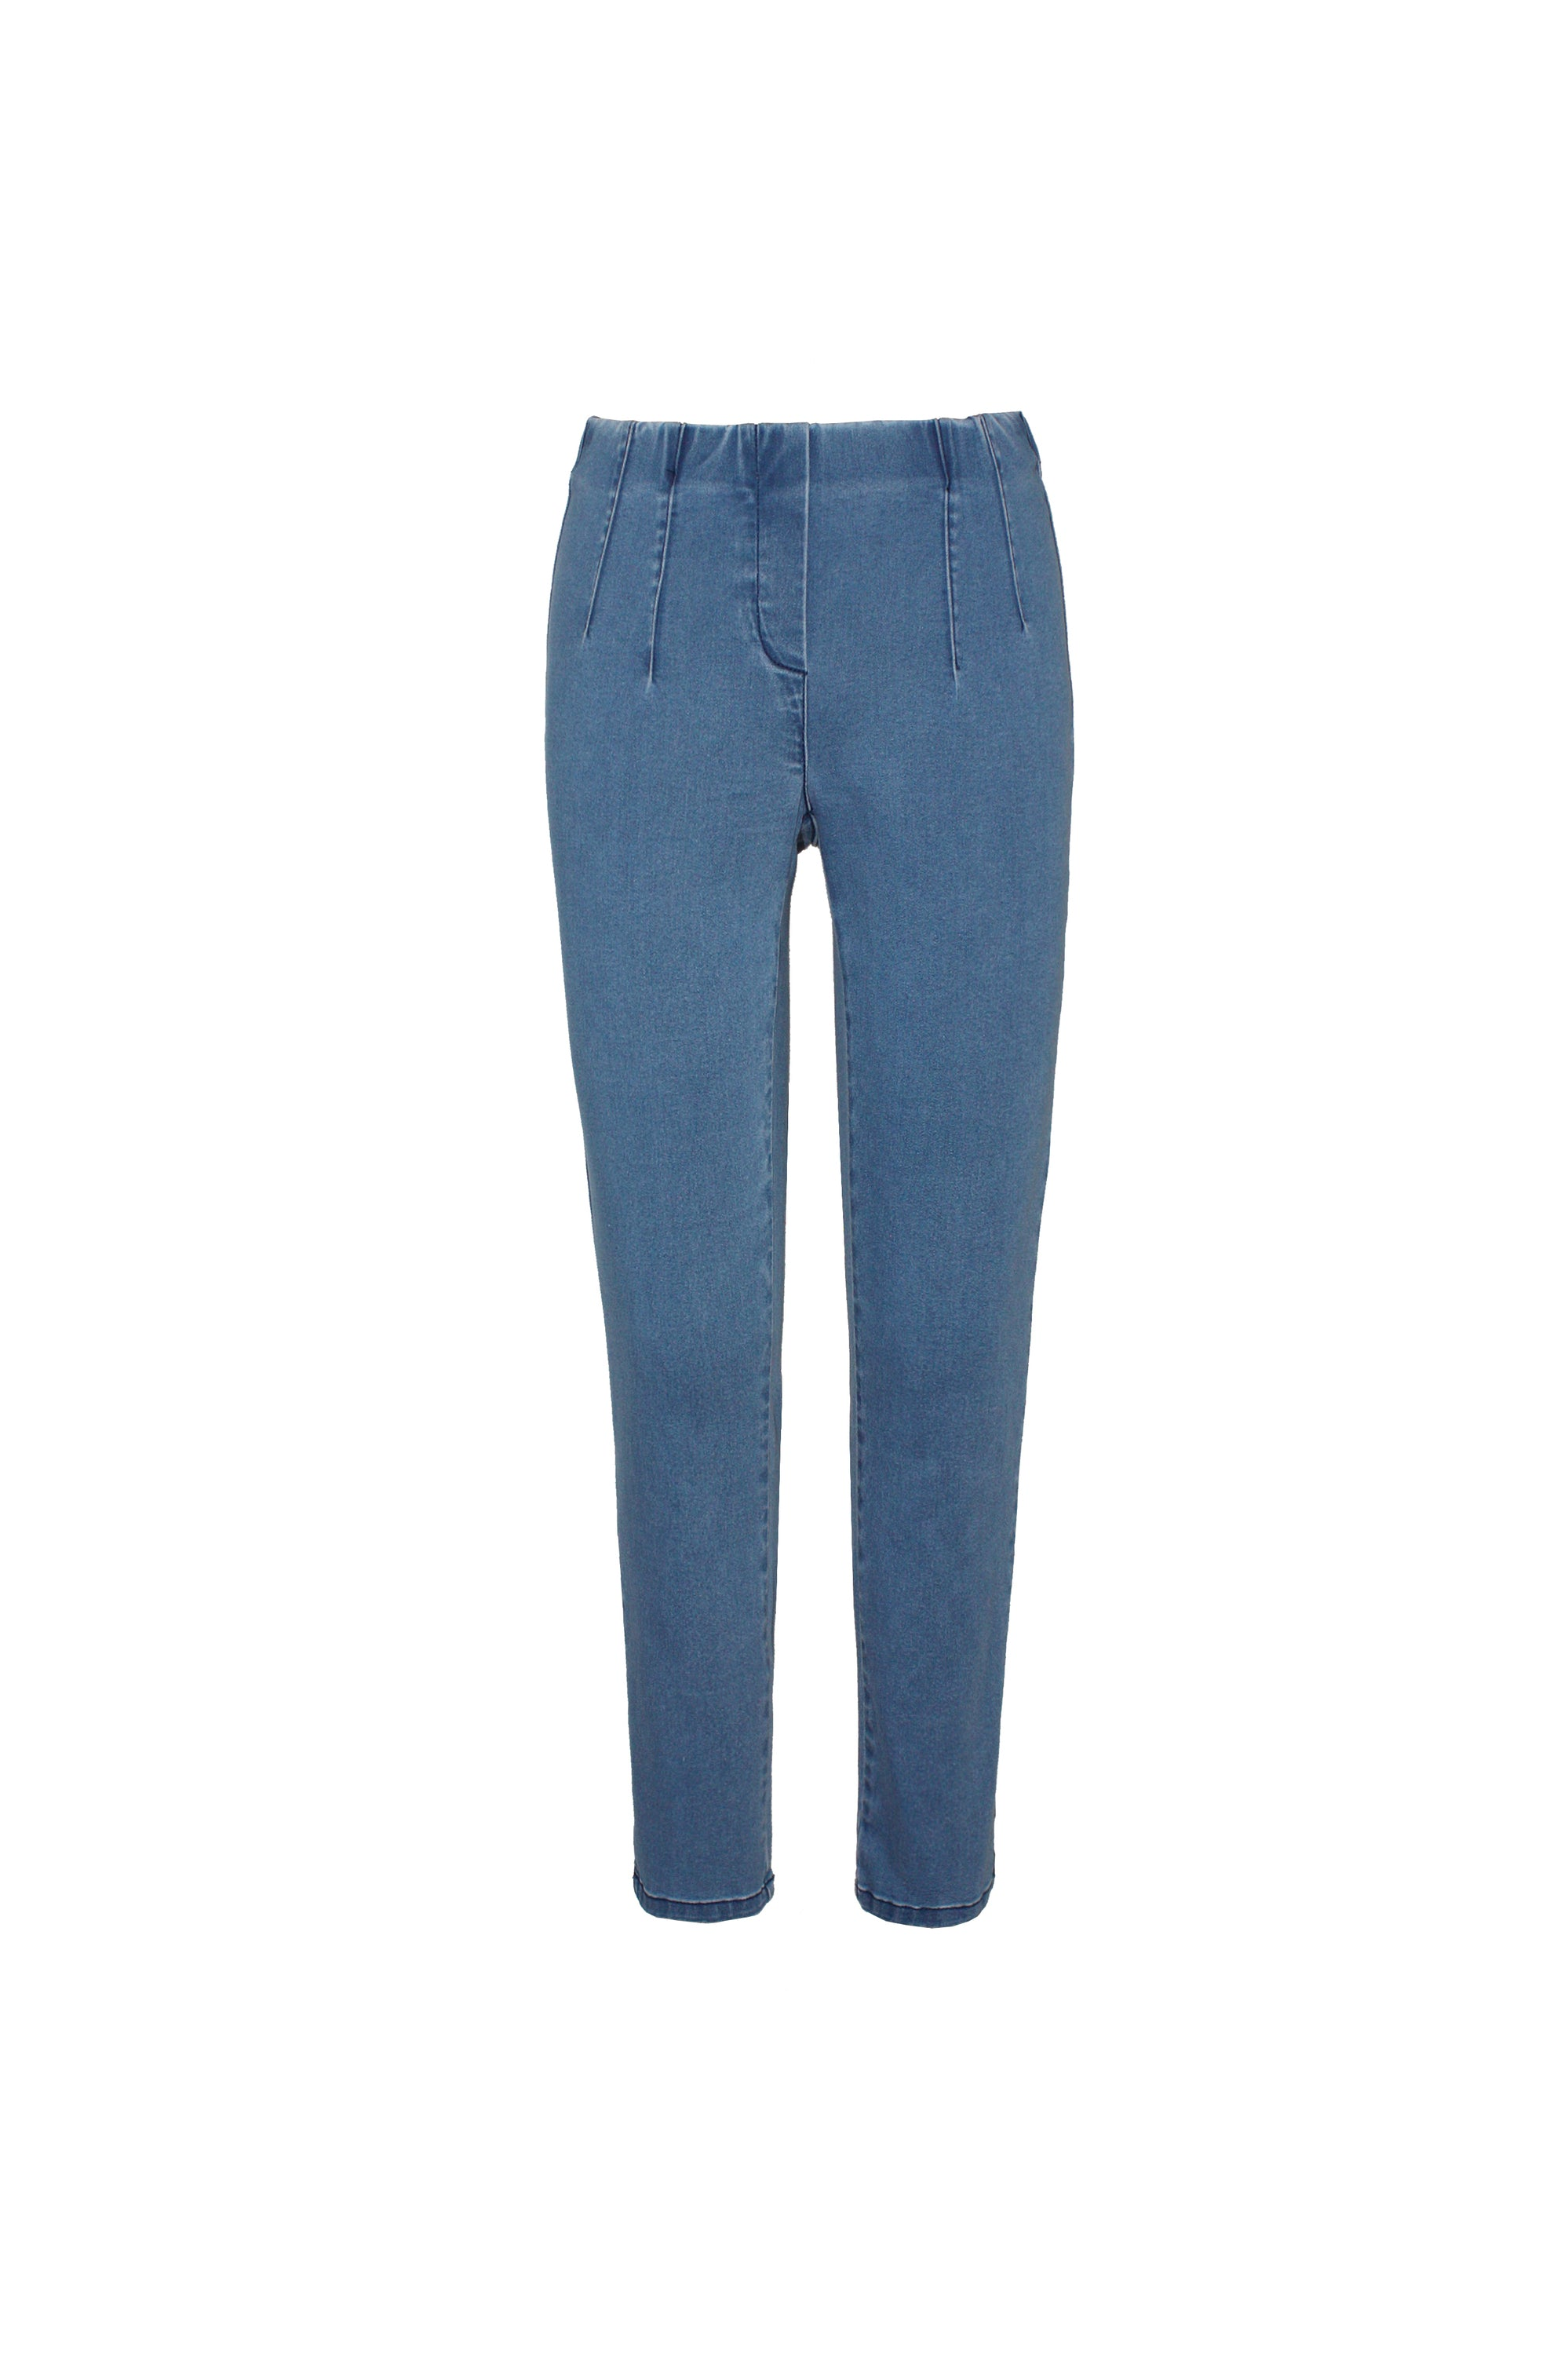 Damen Jeans Happy Fit 7/8 denim